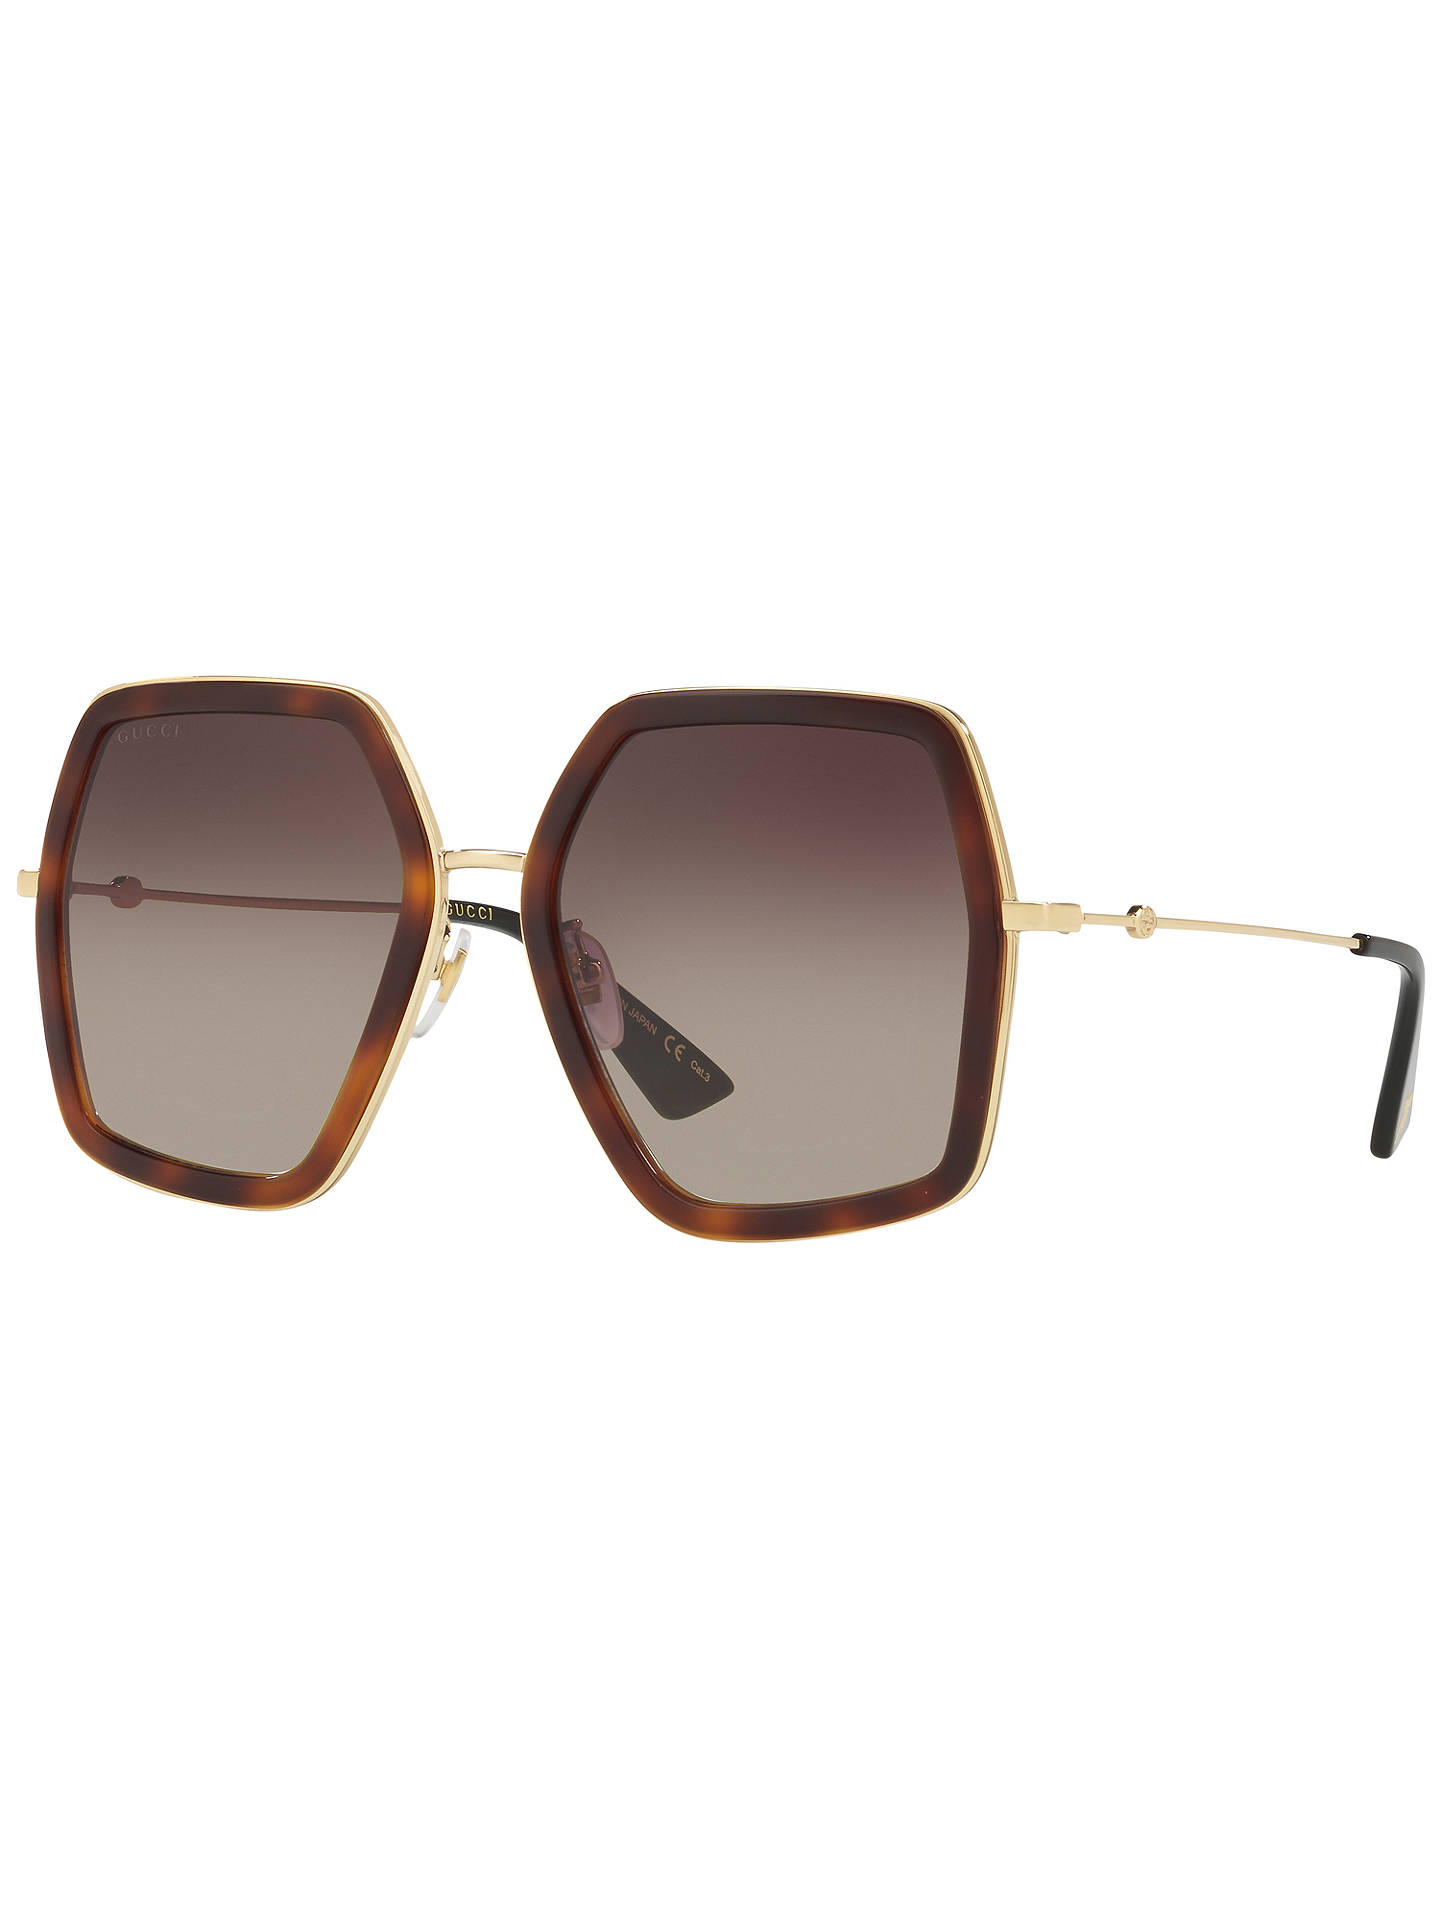 cfefd19daa00 Gucci GG0106S Outsize Square Sunglasses at John Lewis   Partners